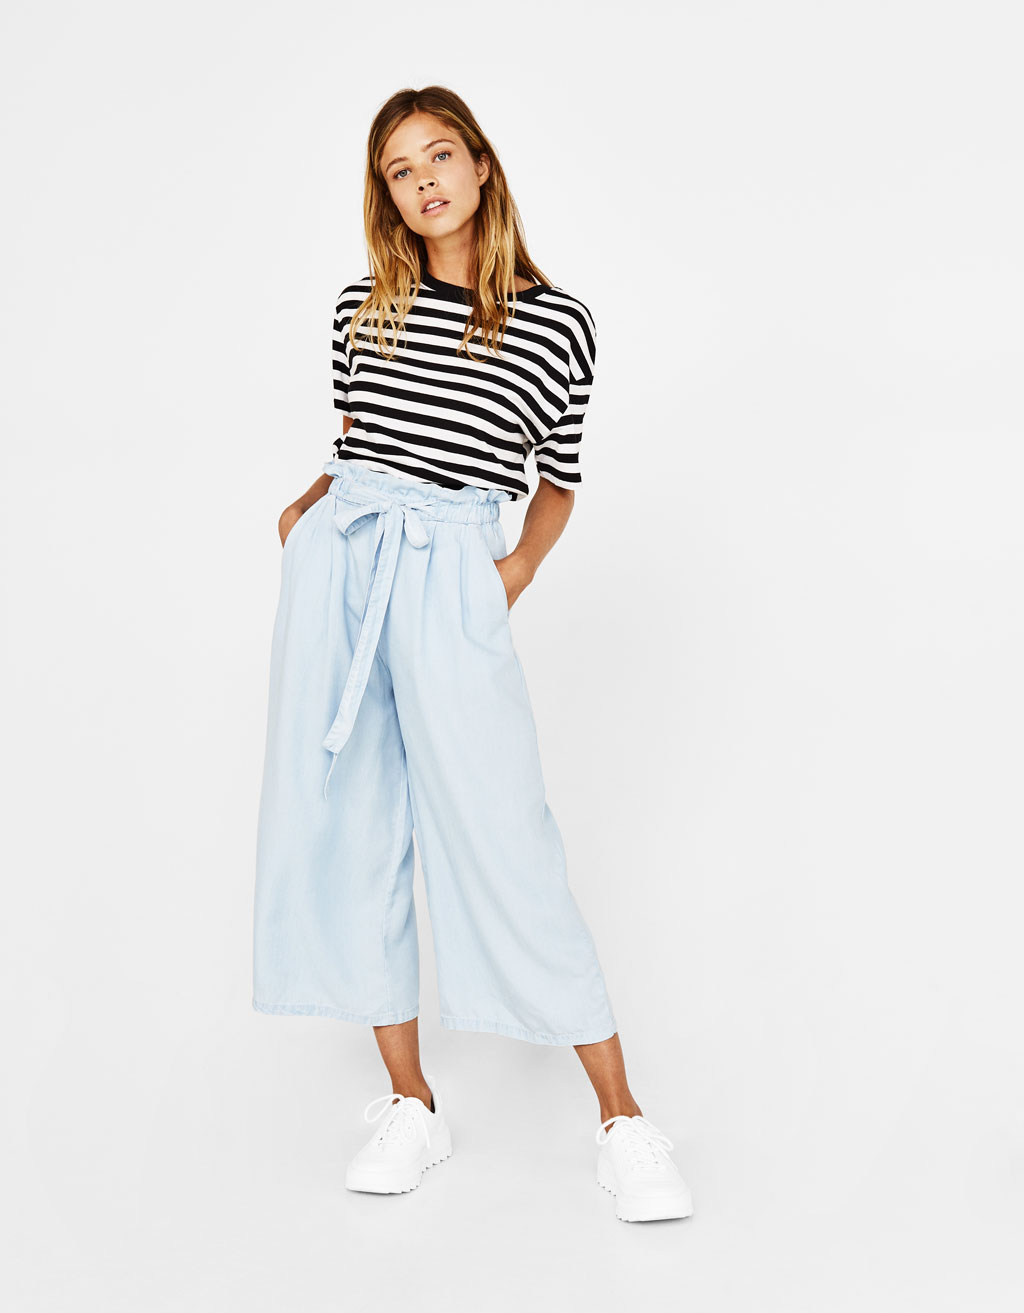 High Waist Fit cropped tencel® culottes with belt